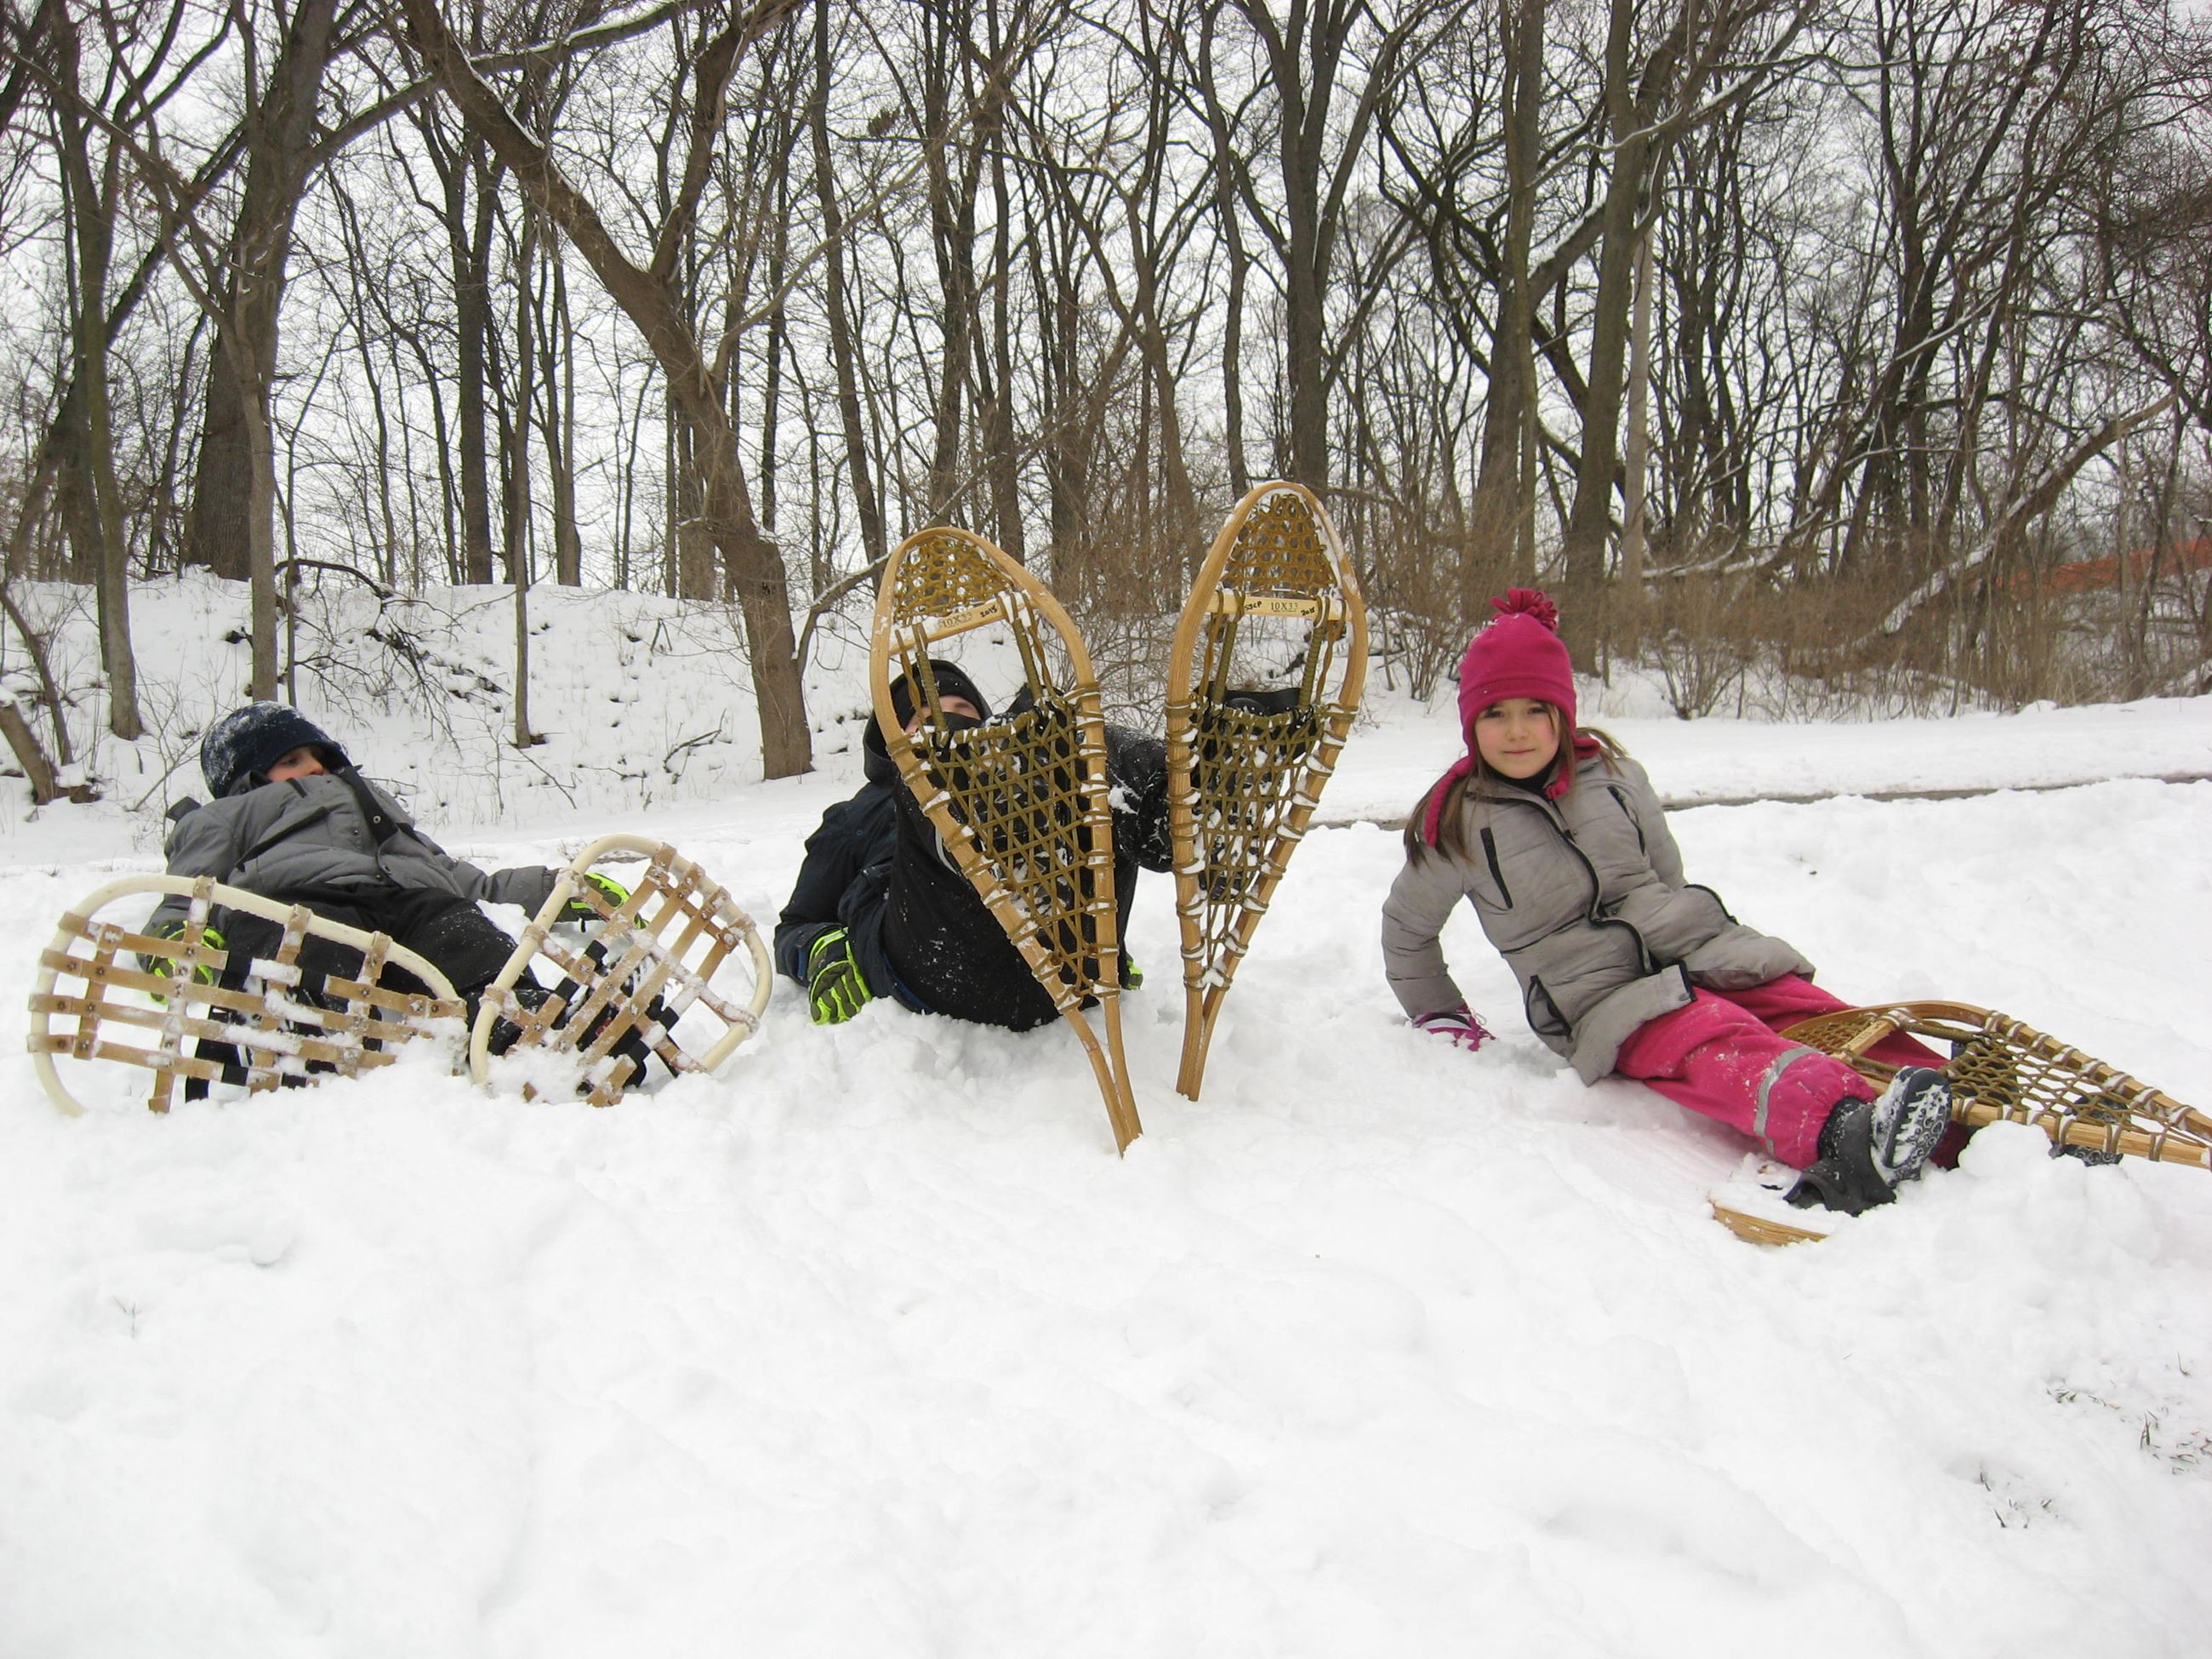 Snowshoers sit in snow